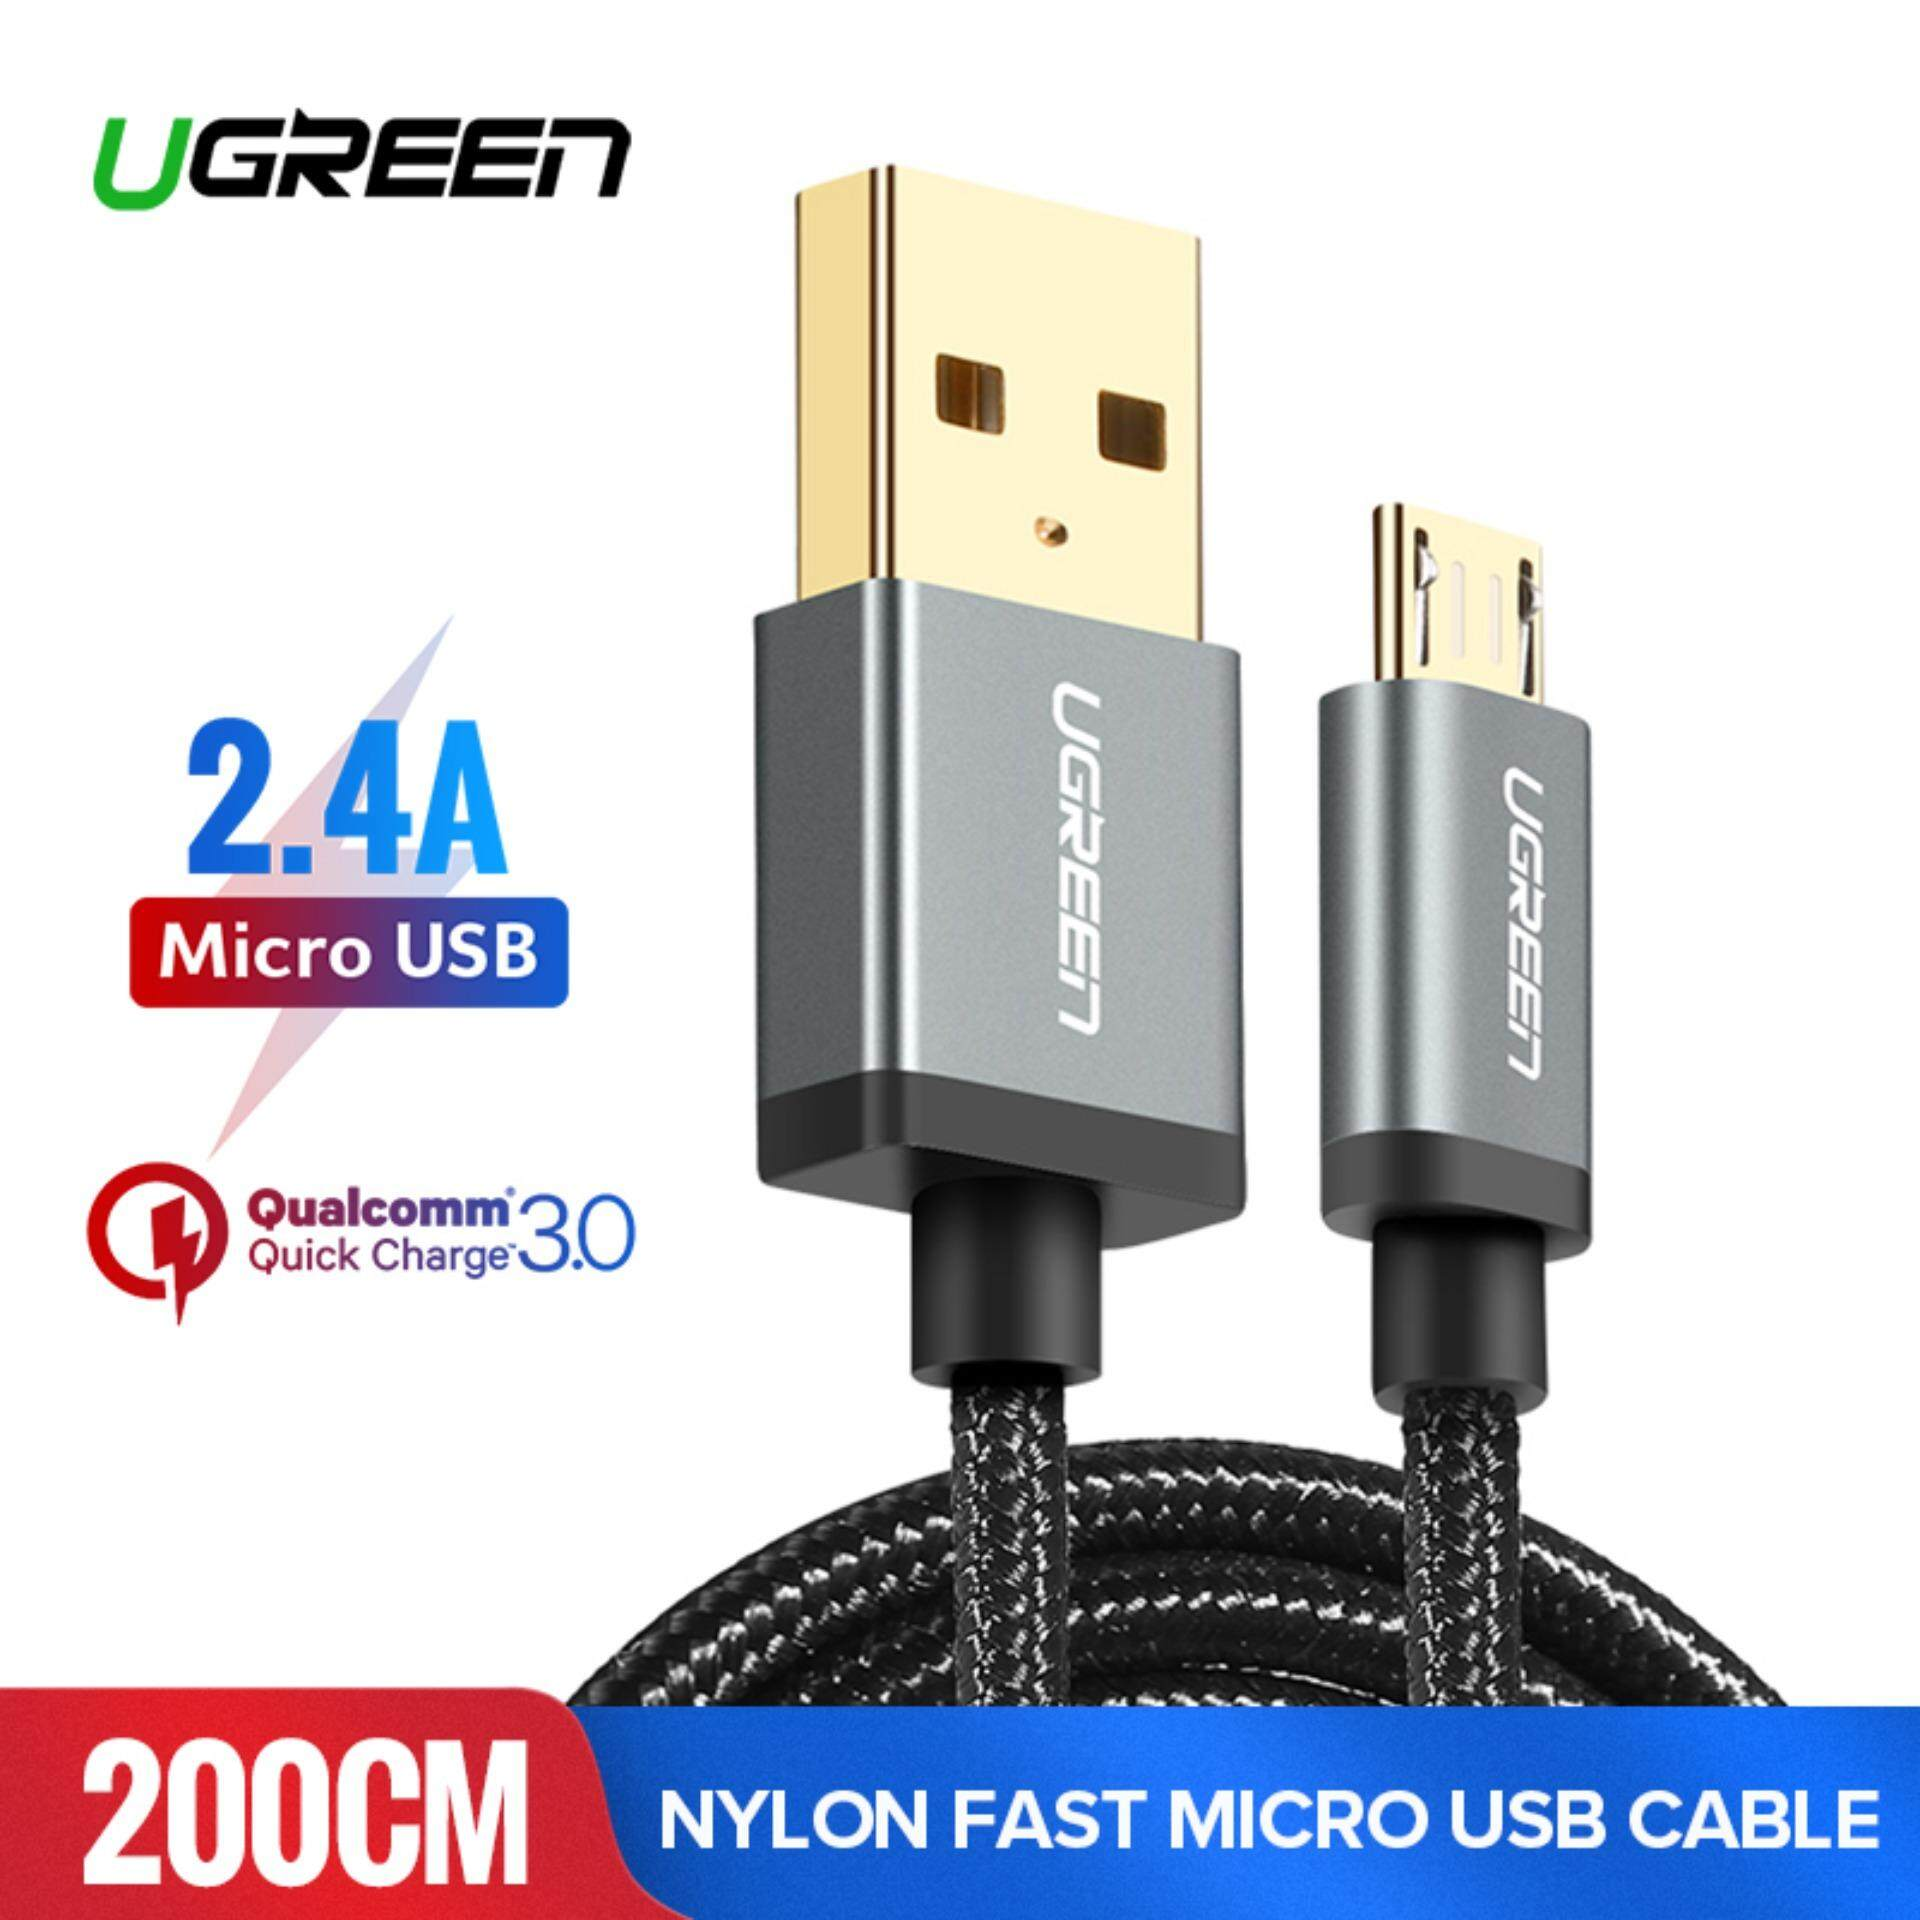 UGREEN 2 Meter Micro USB Cable Nylon Braided Fast Quick Charger Cable USB to Micro USB